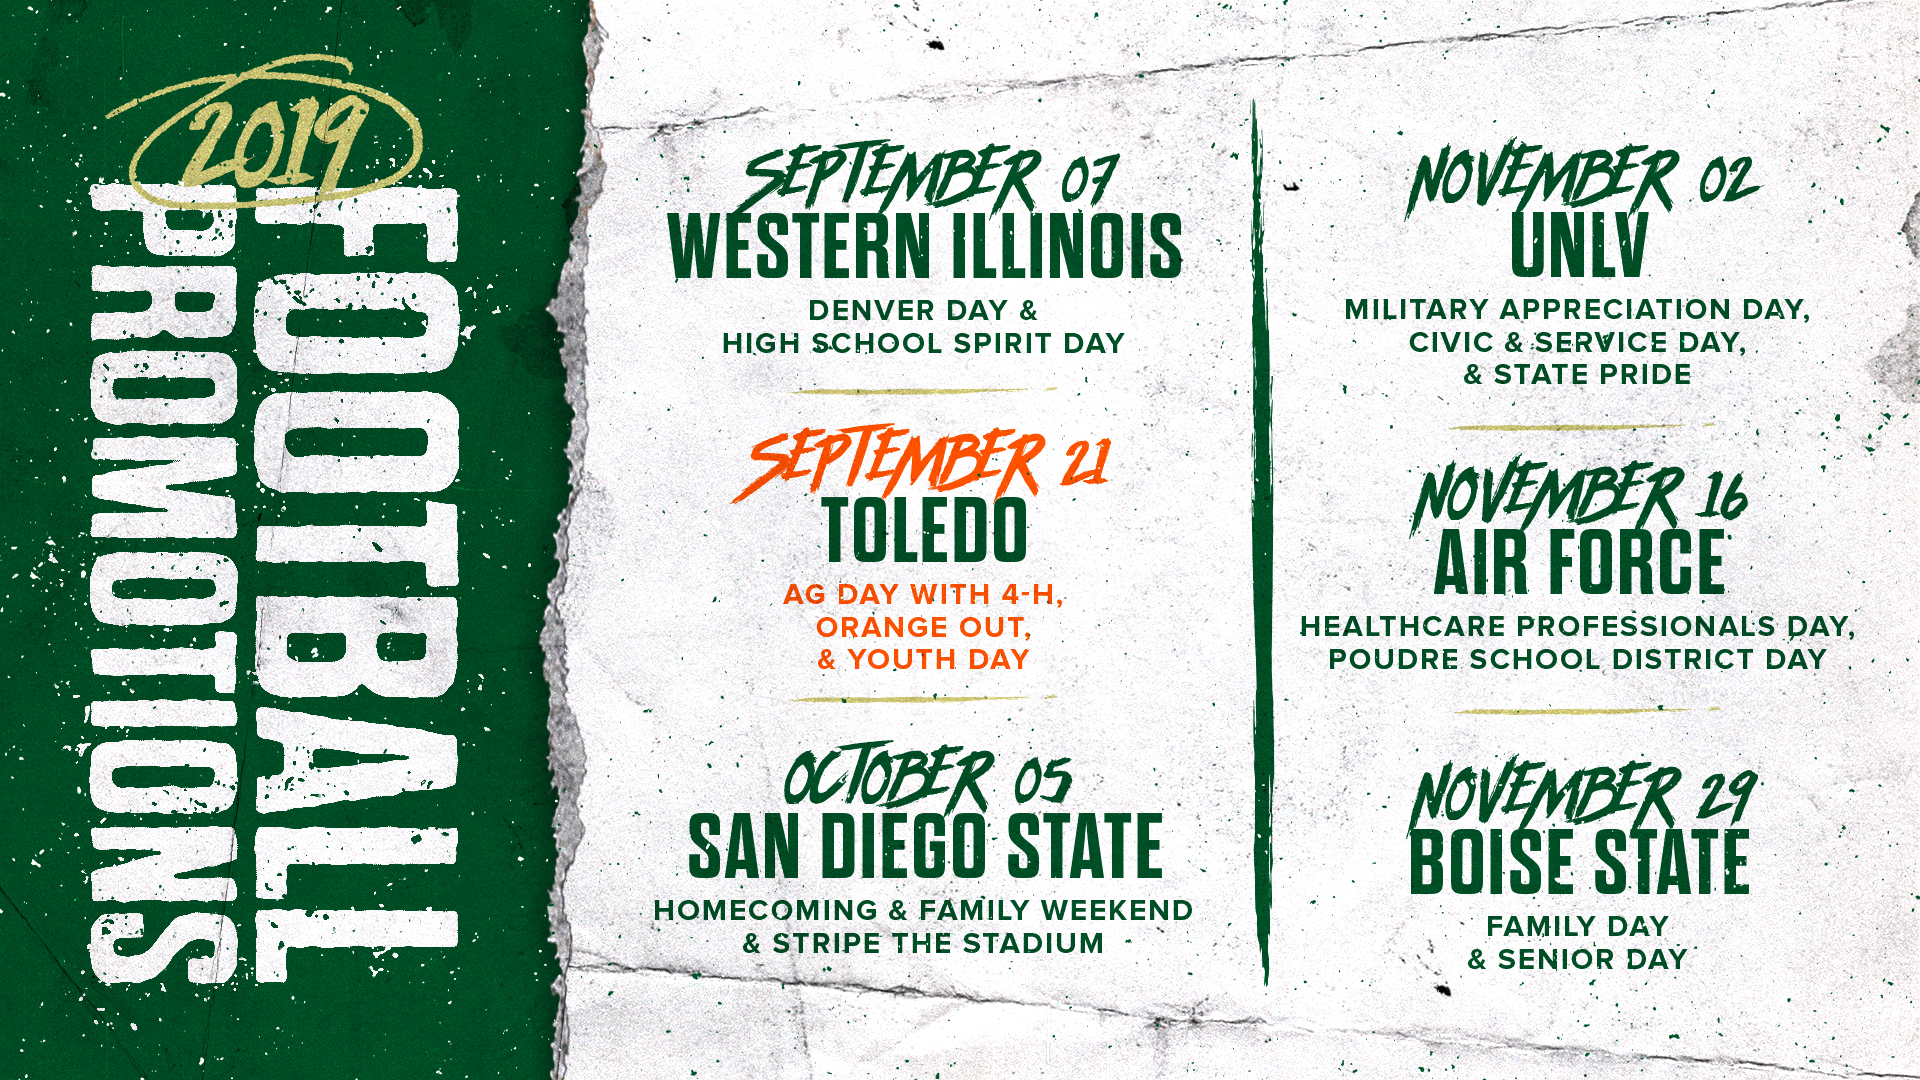 CSU announces promotions for 2019 home football games